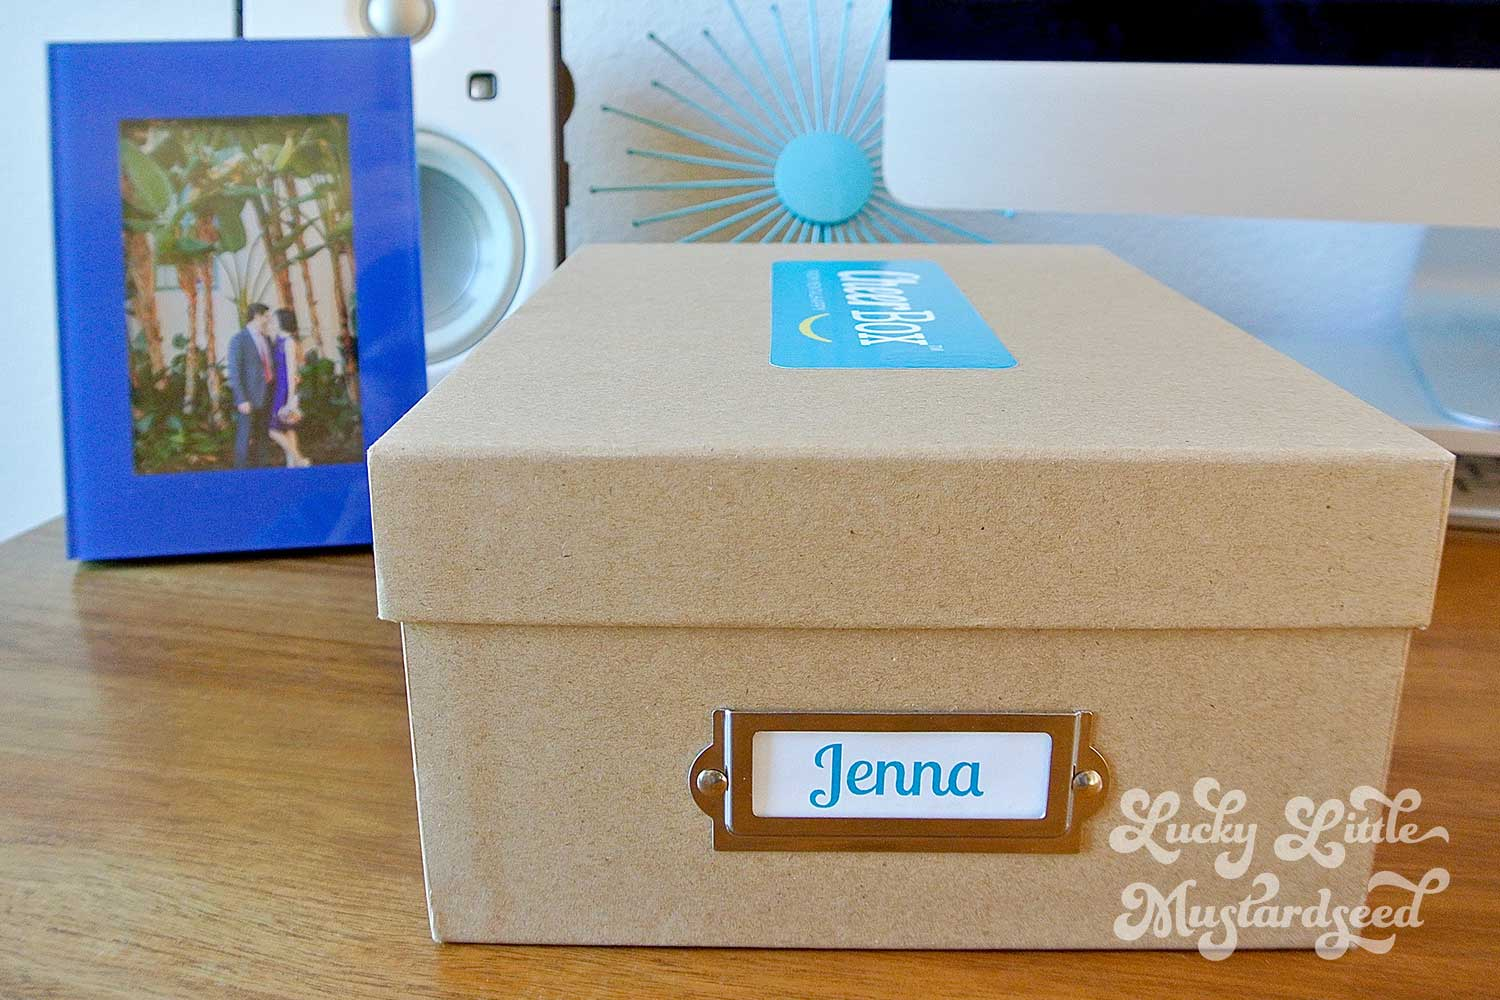 jenna-pilant-san-diego-lifestyle-blogger-lucky-little-mustardseed-mentalhappy-cheerbox-2